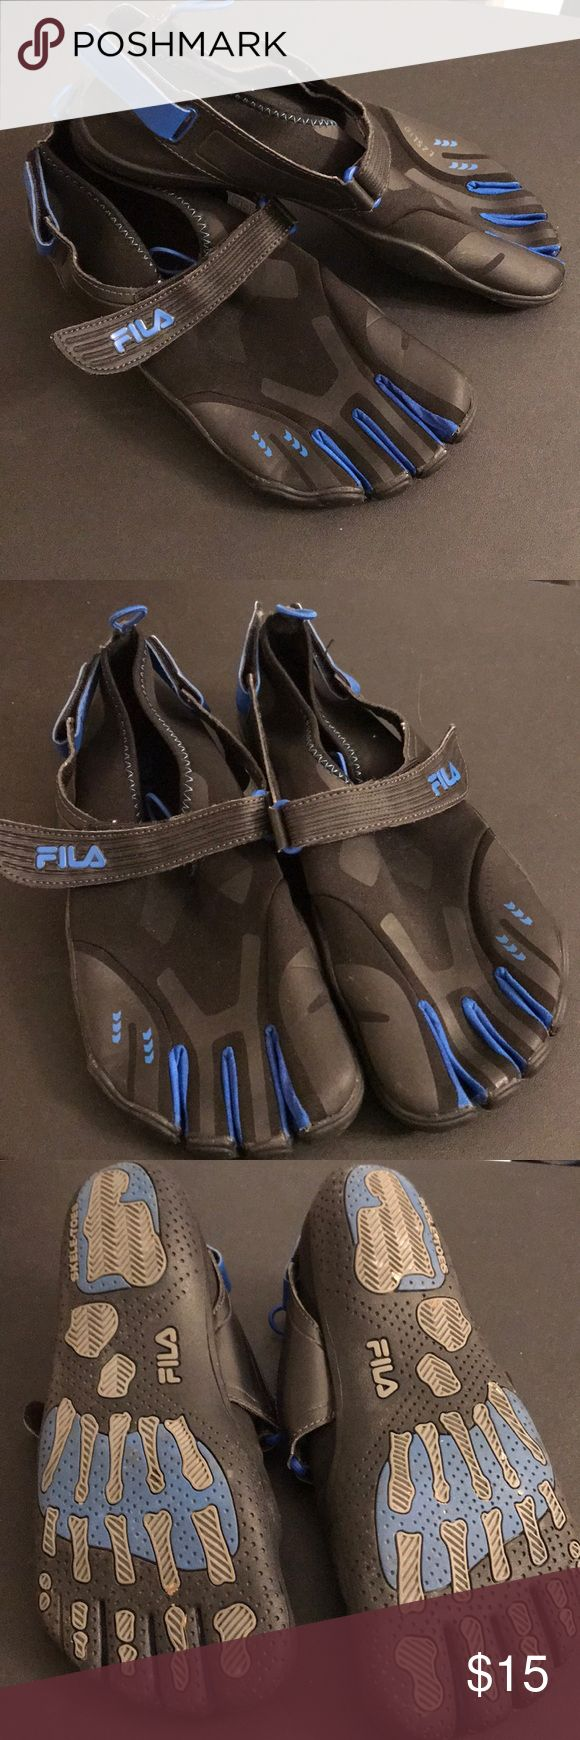 Men's Fila Toe Shoes A pair of black and blue toe shoes for men. These shoes have been worn a few times but are in good condition. They are perfect for any activity. Fila Shoes